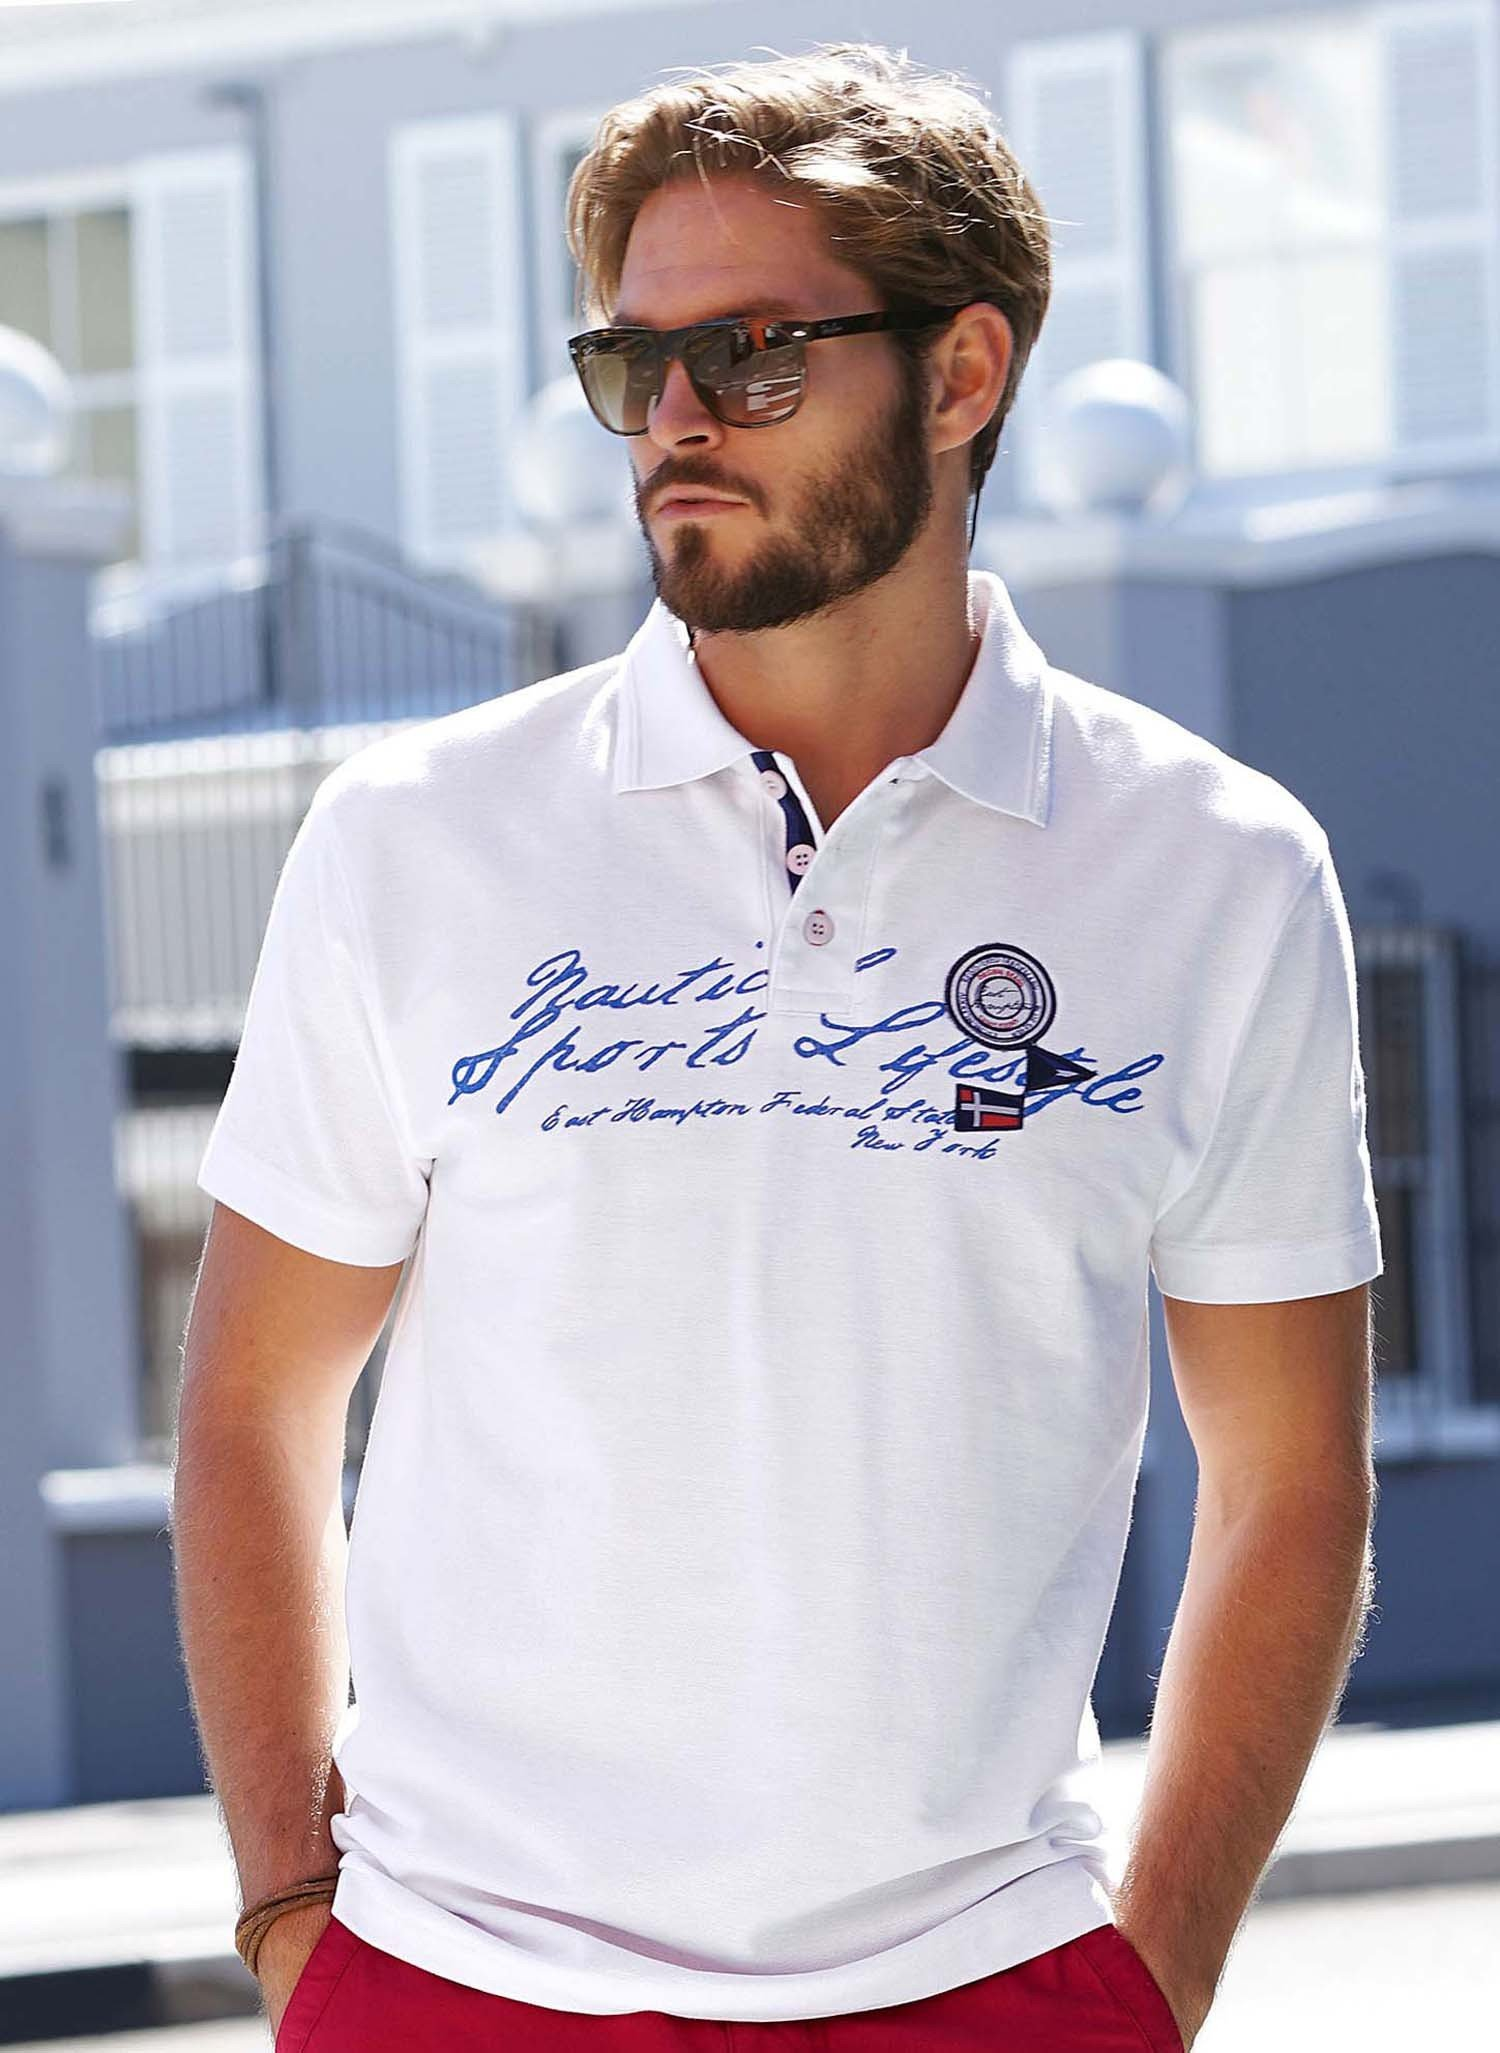 H-KA-Polo-Shirt,Label weiss L 001 - 3 - Ronja.ch